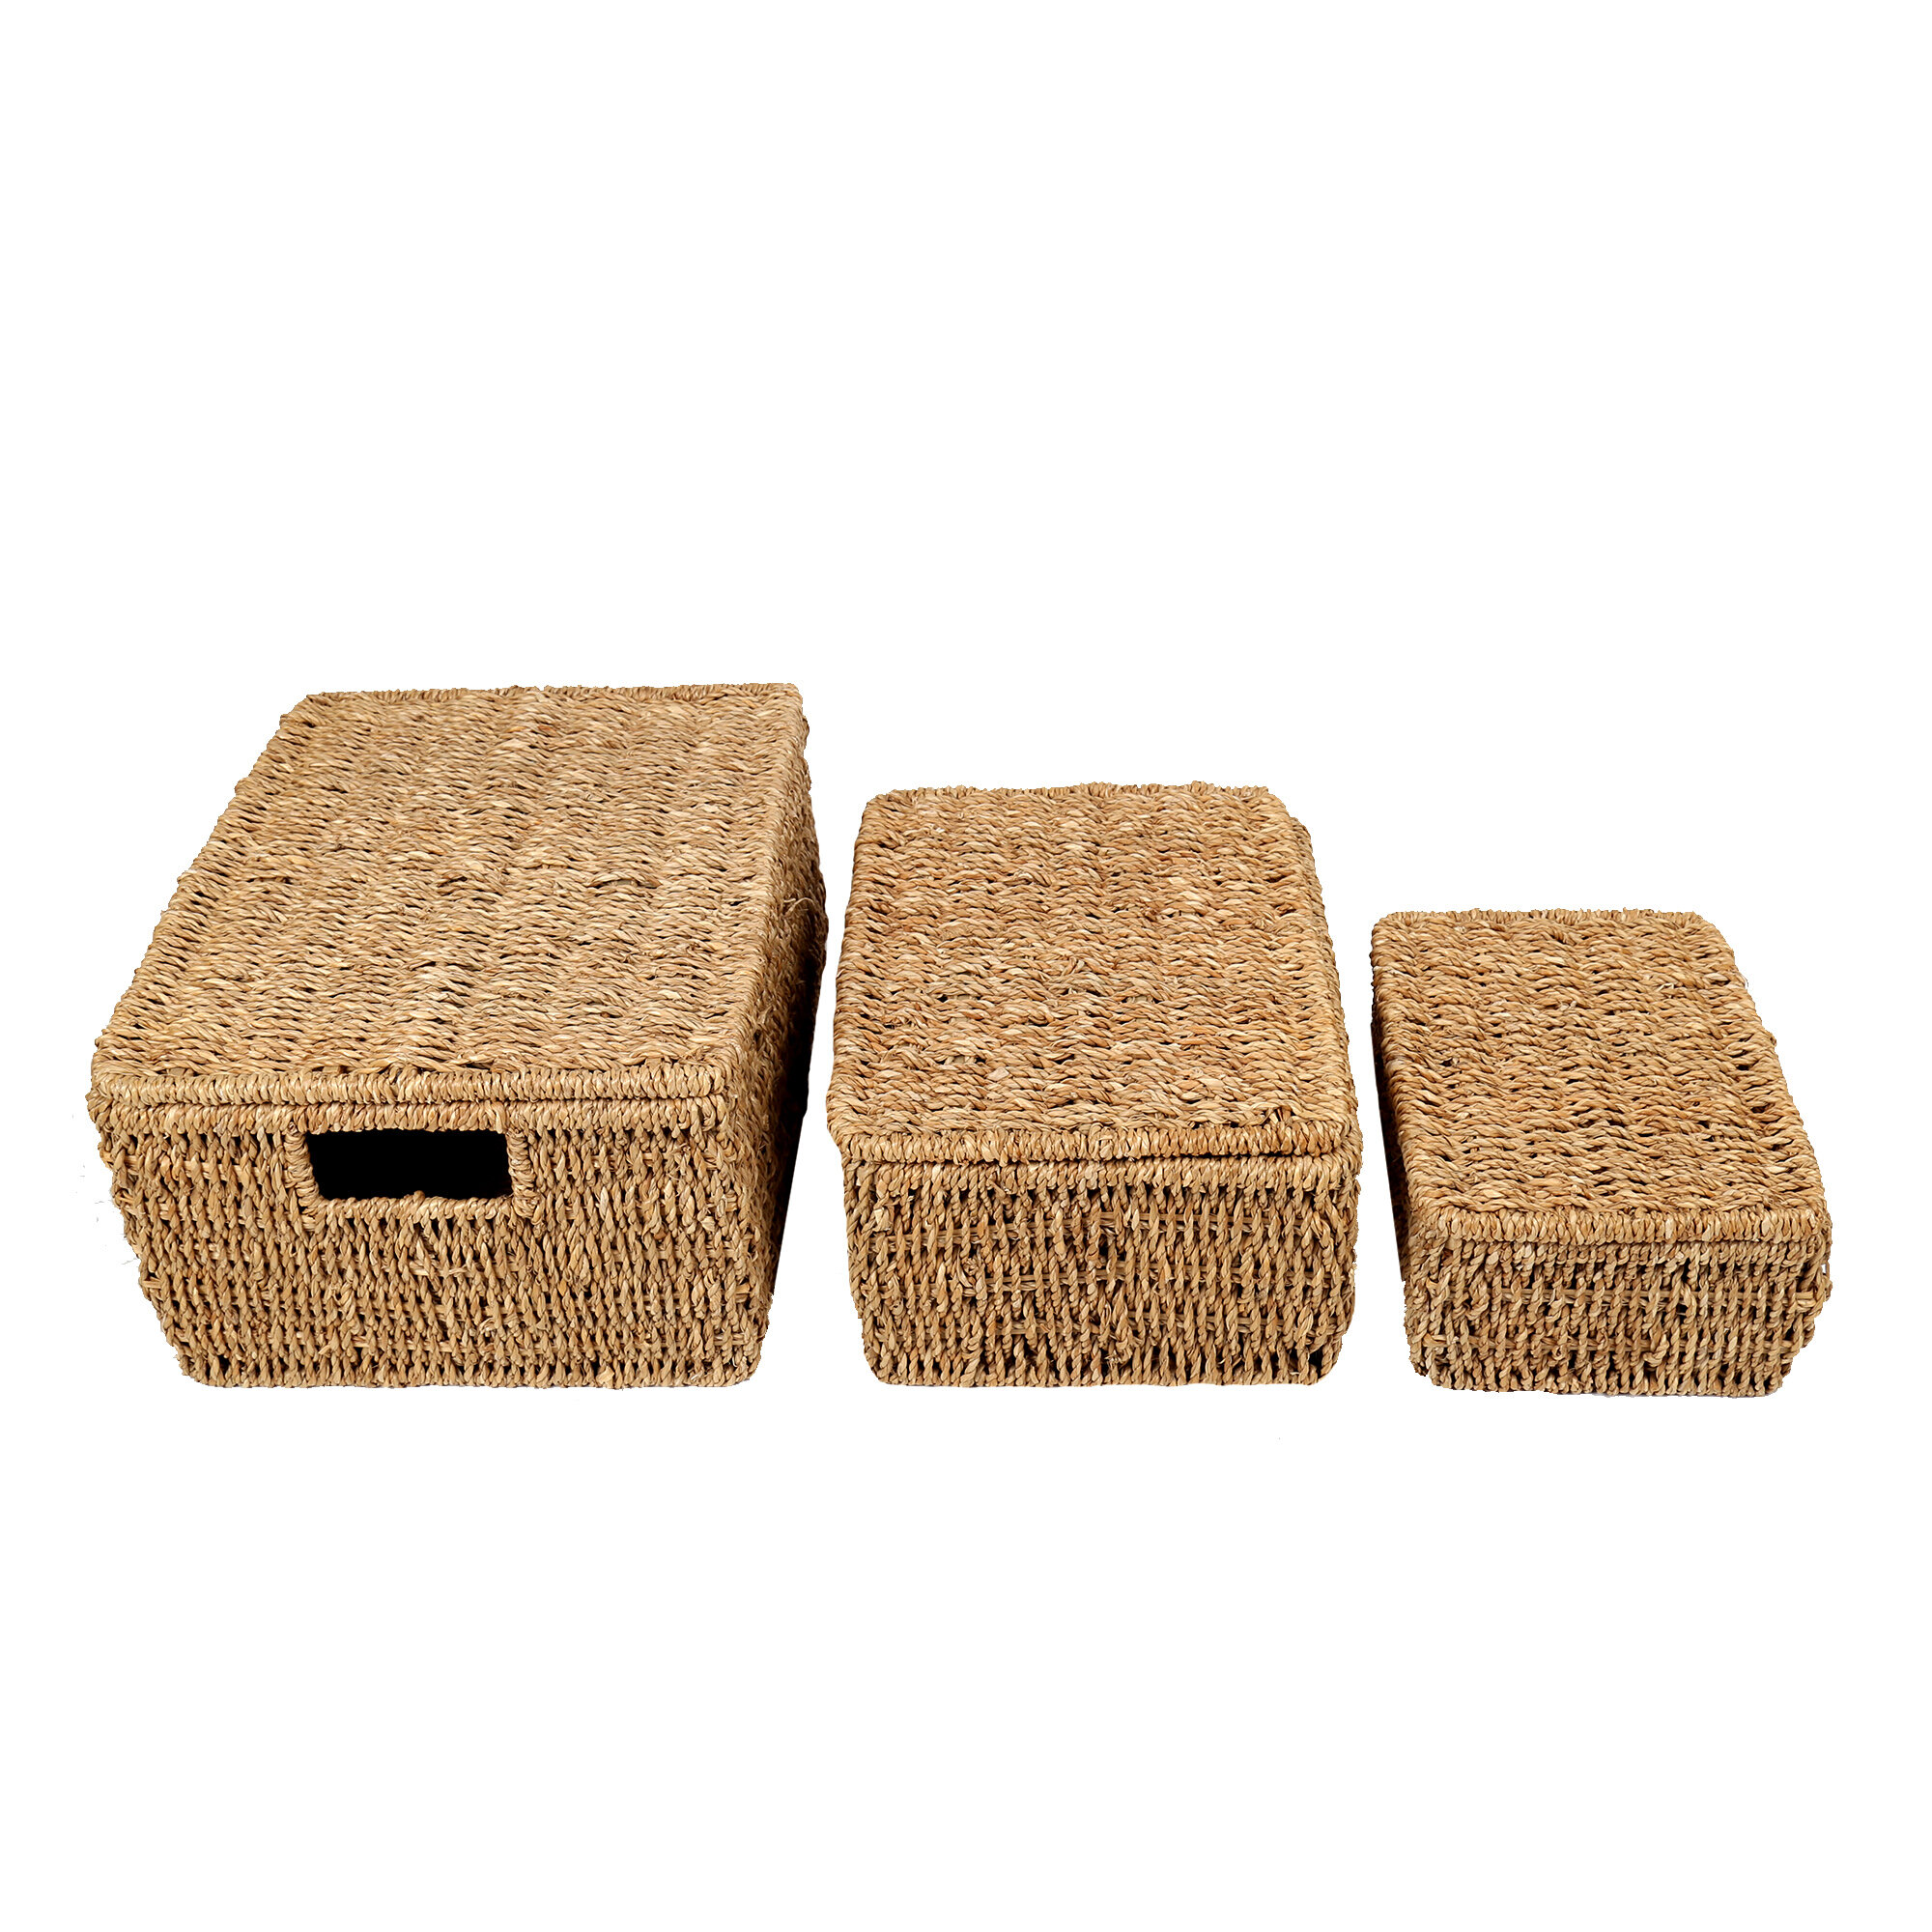 Bay Isle Home Storage Seagrass Wicker Box Set | Wayfair